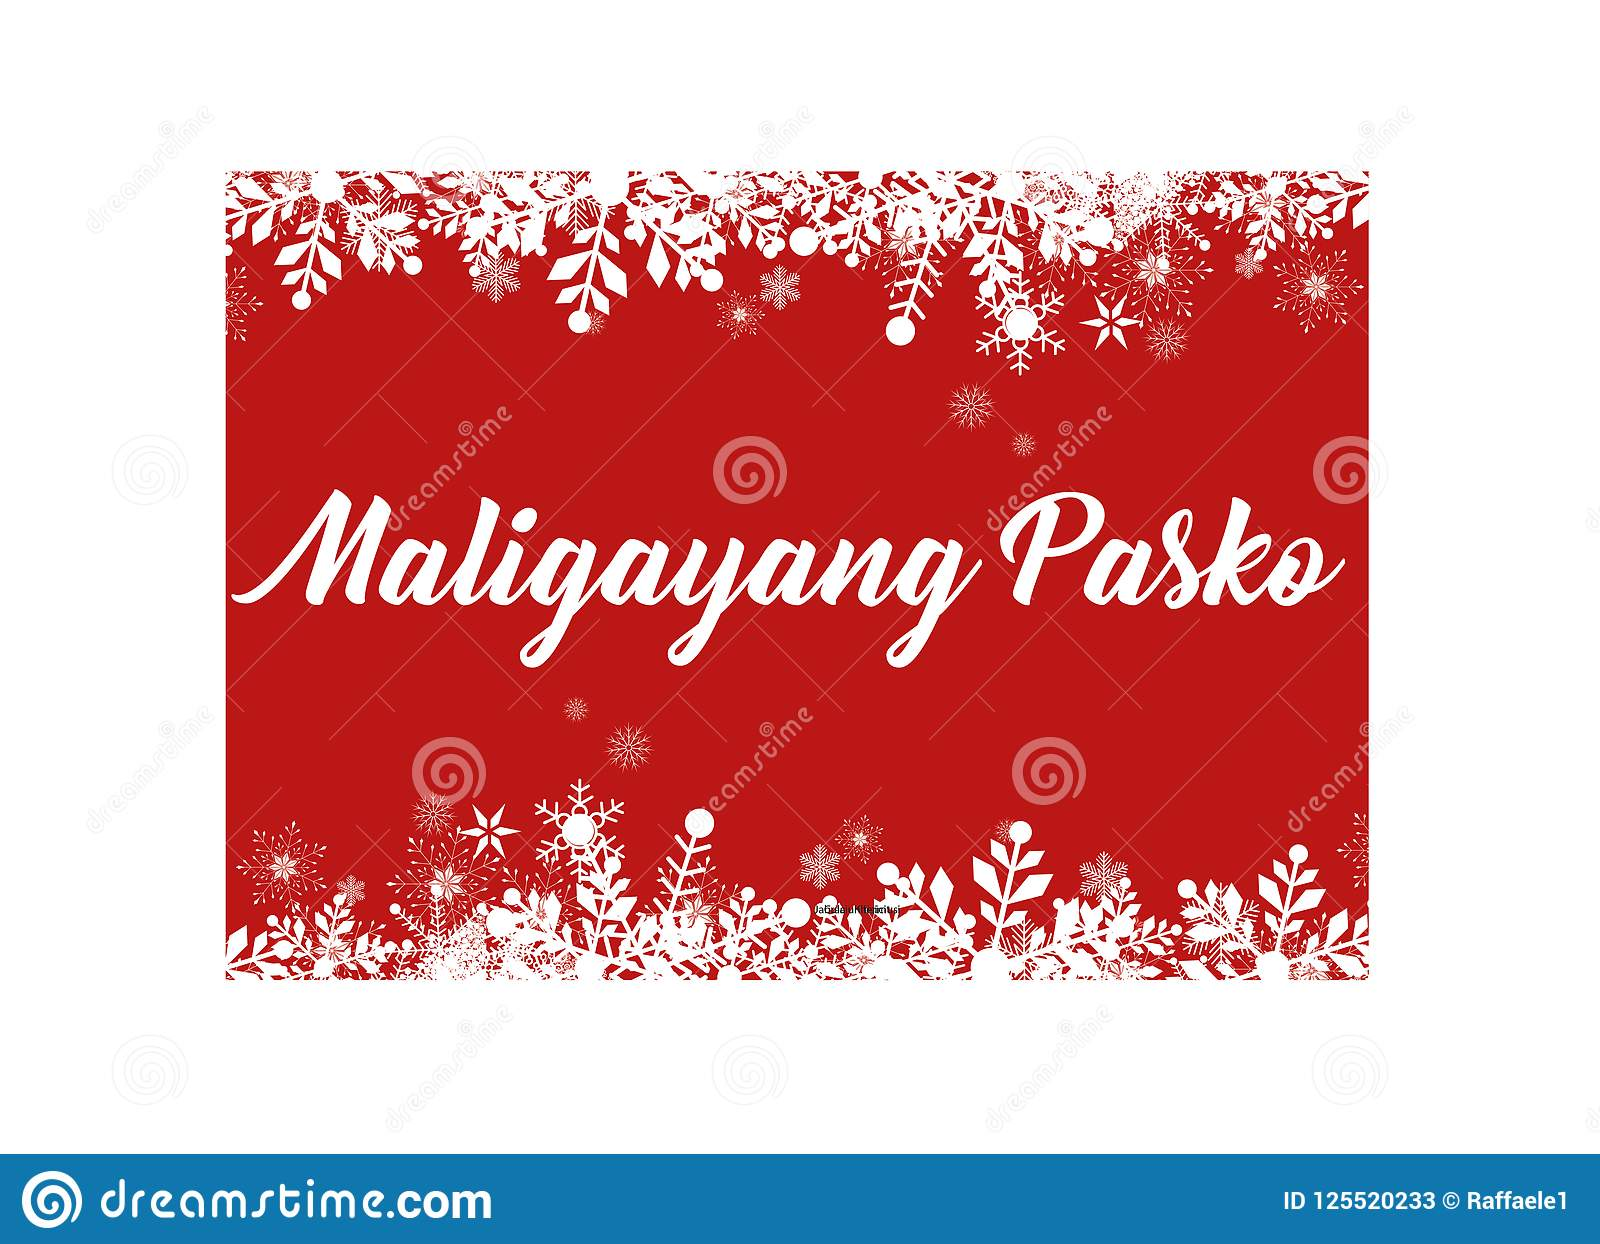 Merry Christmas In Tagalog.Red Merry Christmas In Filipino Greeting Card For Web And